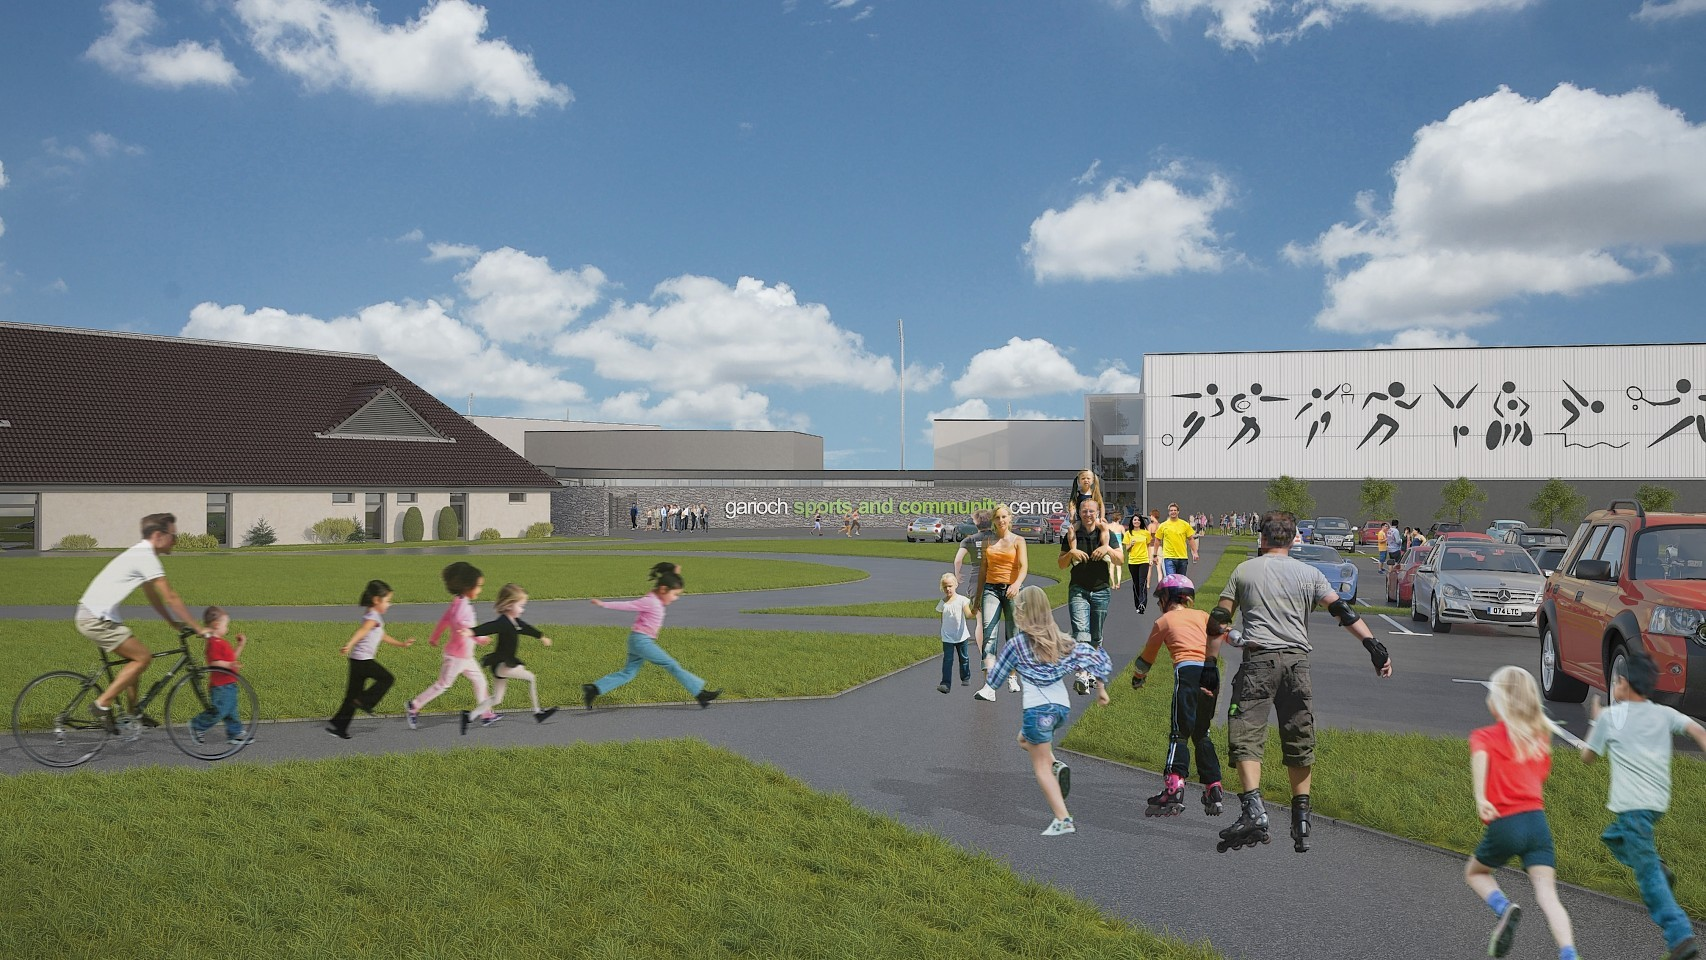 How the Garioch Sports and Community Centre could look